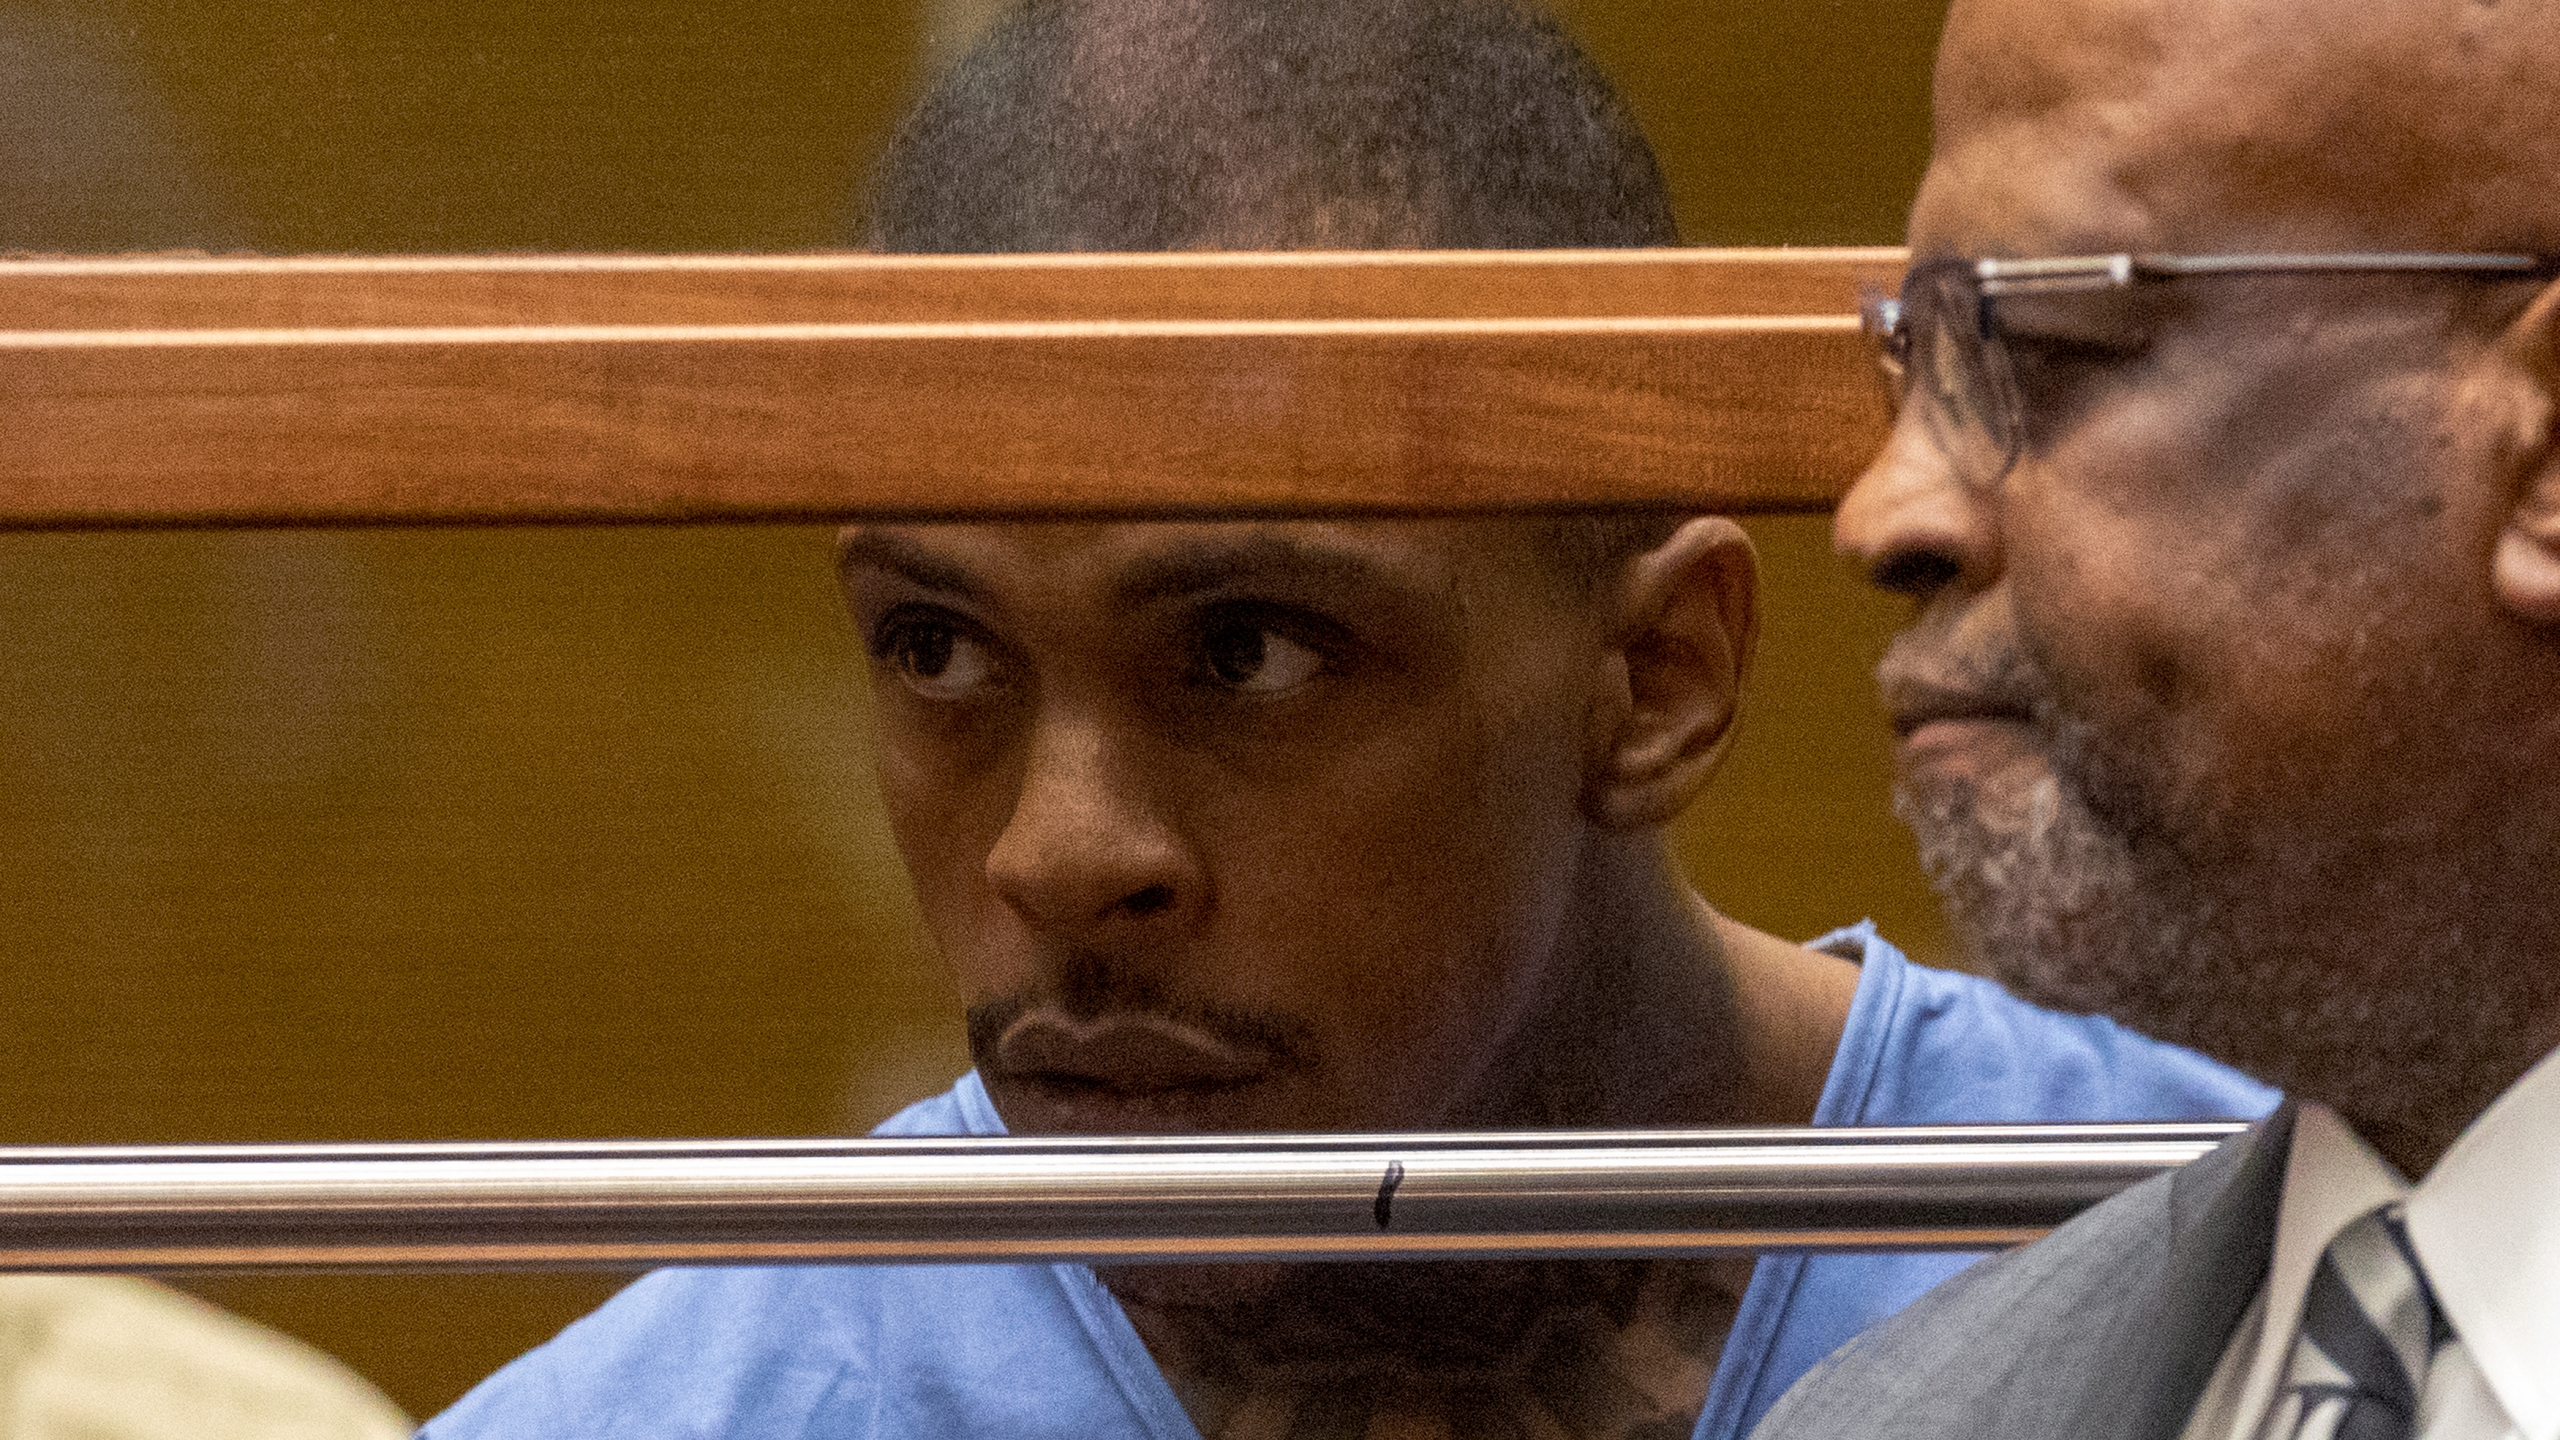 Eric Ronald Holder Jr., 29, who is accused of killing of rapper Nipsey Hussle, appears for arraignment in Los Angeles with then-attorney Christopher Darden on April 4, 2019. (Credit: Patrick Fallon / Getty Images)